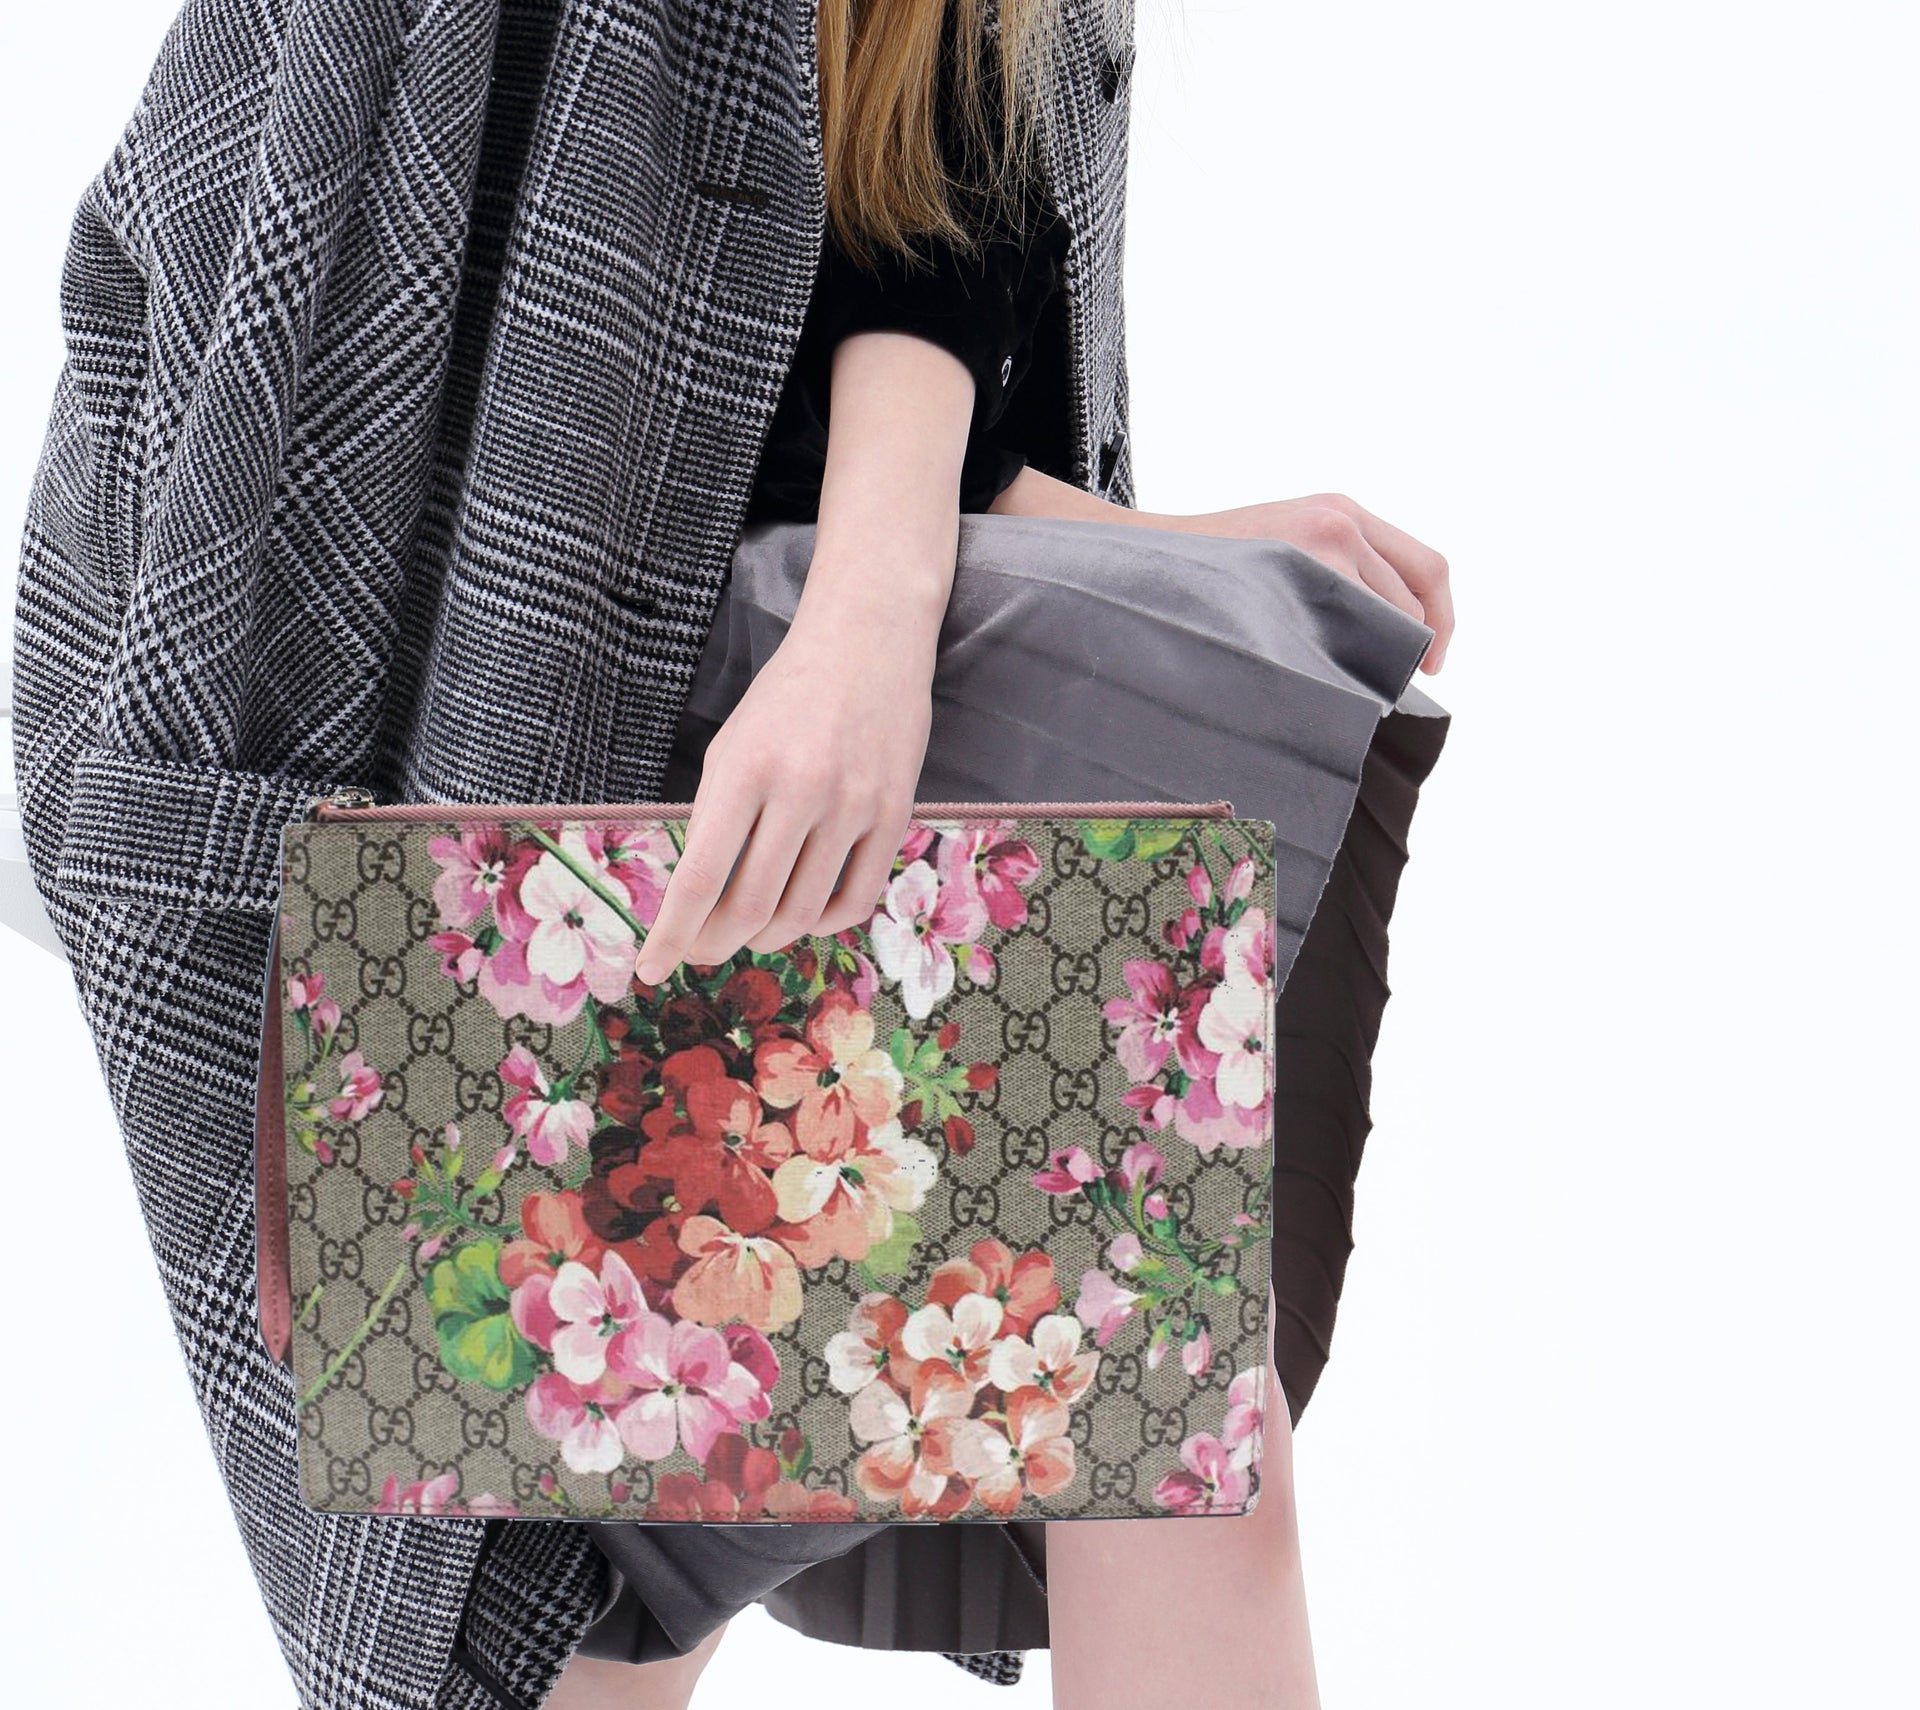 eafbccb212e837 Gucci GG Blooms pouch – STYLISHTOP